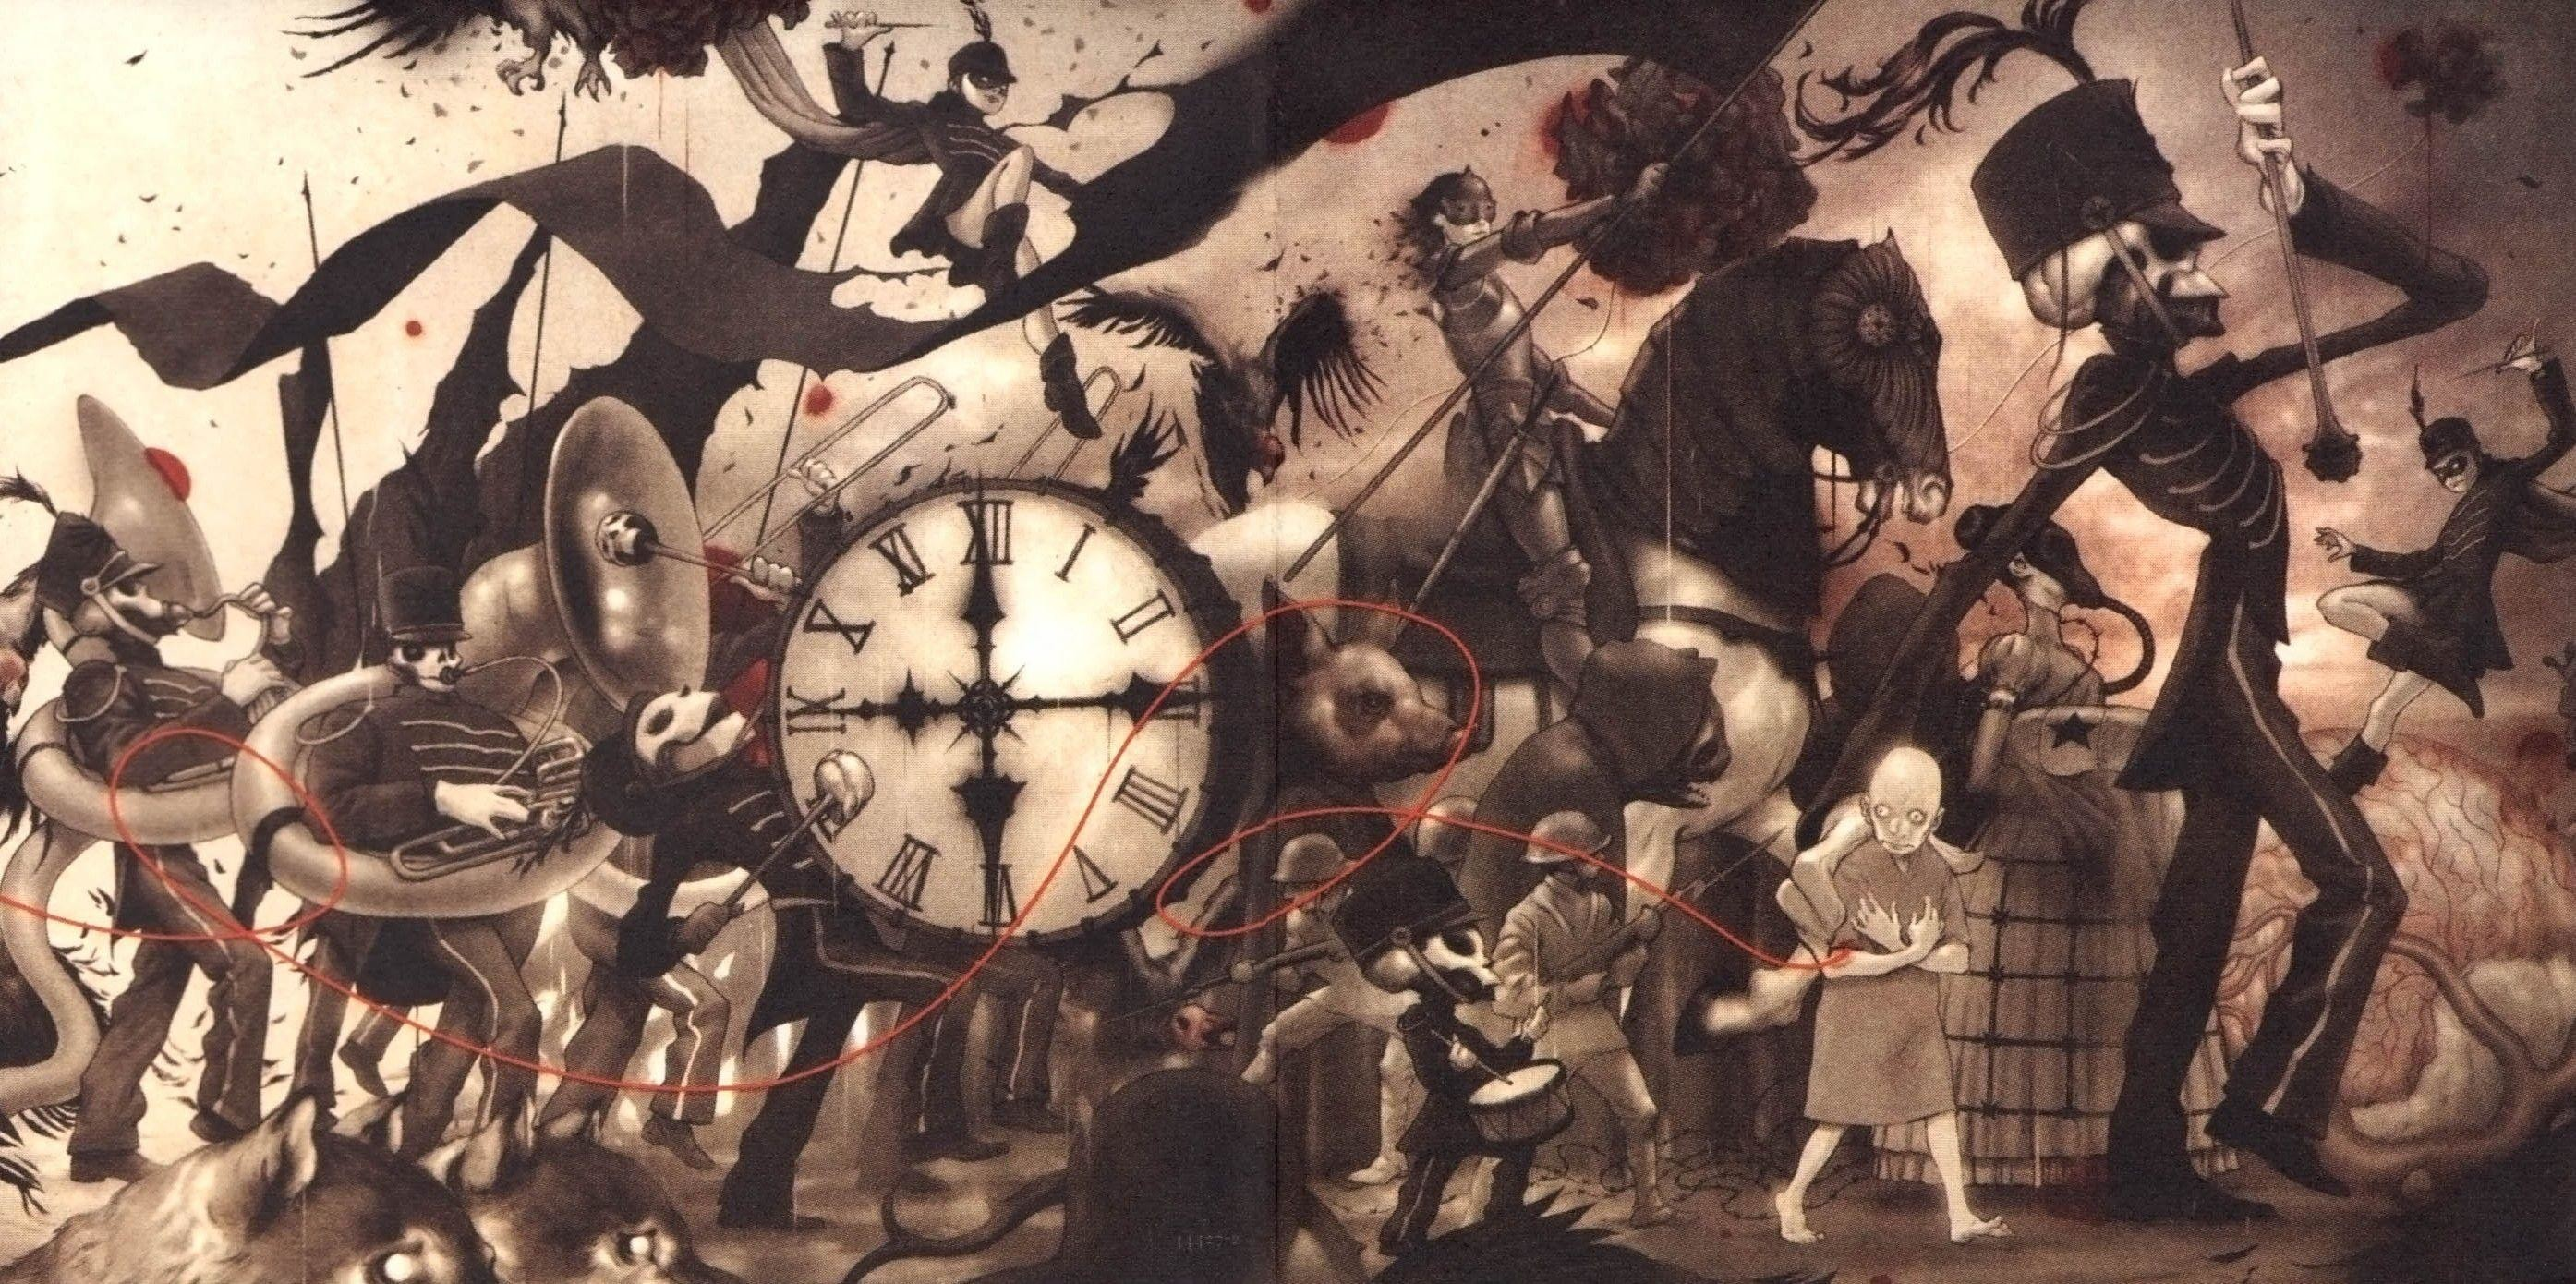 My Chemical Romance Wallpaper Black Parade 60 images 2789x1390